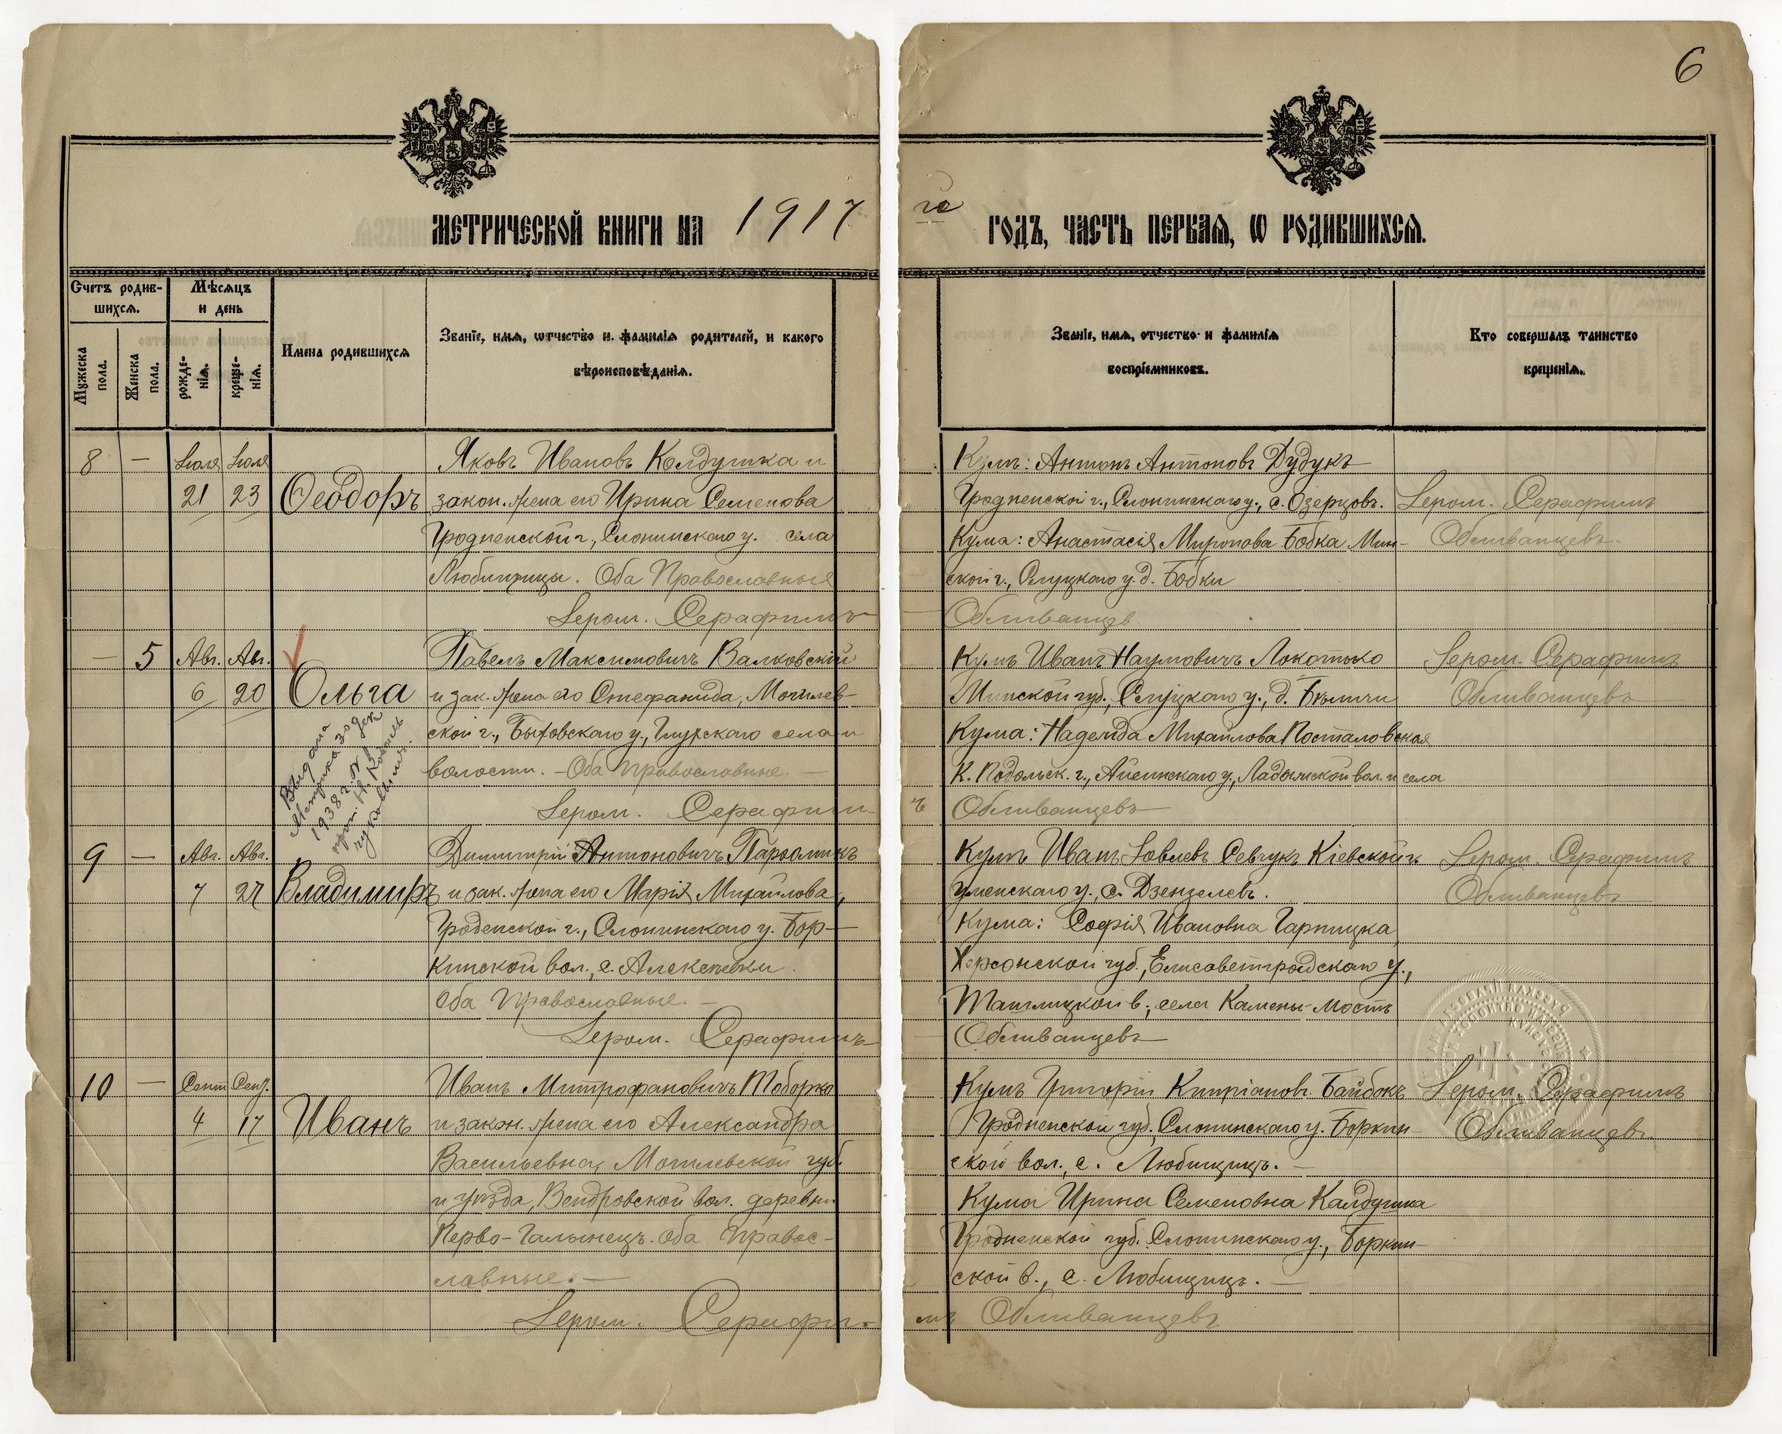 Birth, marriage and death register, Holy Trinity Russian Orthodox Church, Kansas City, Kansas - 1917 - 006 - Birth